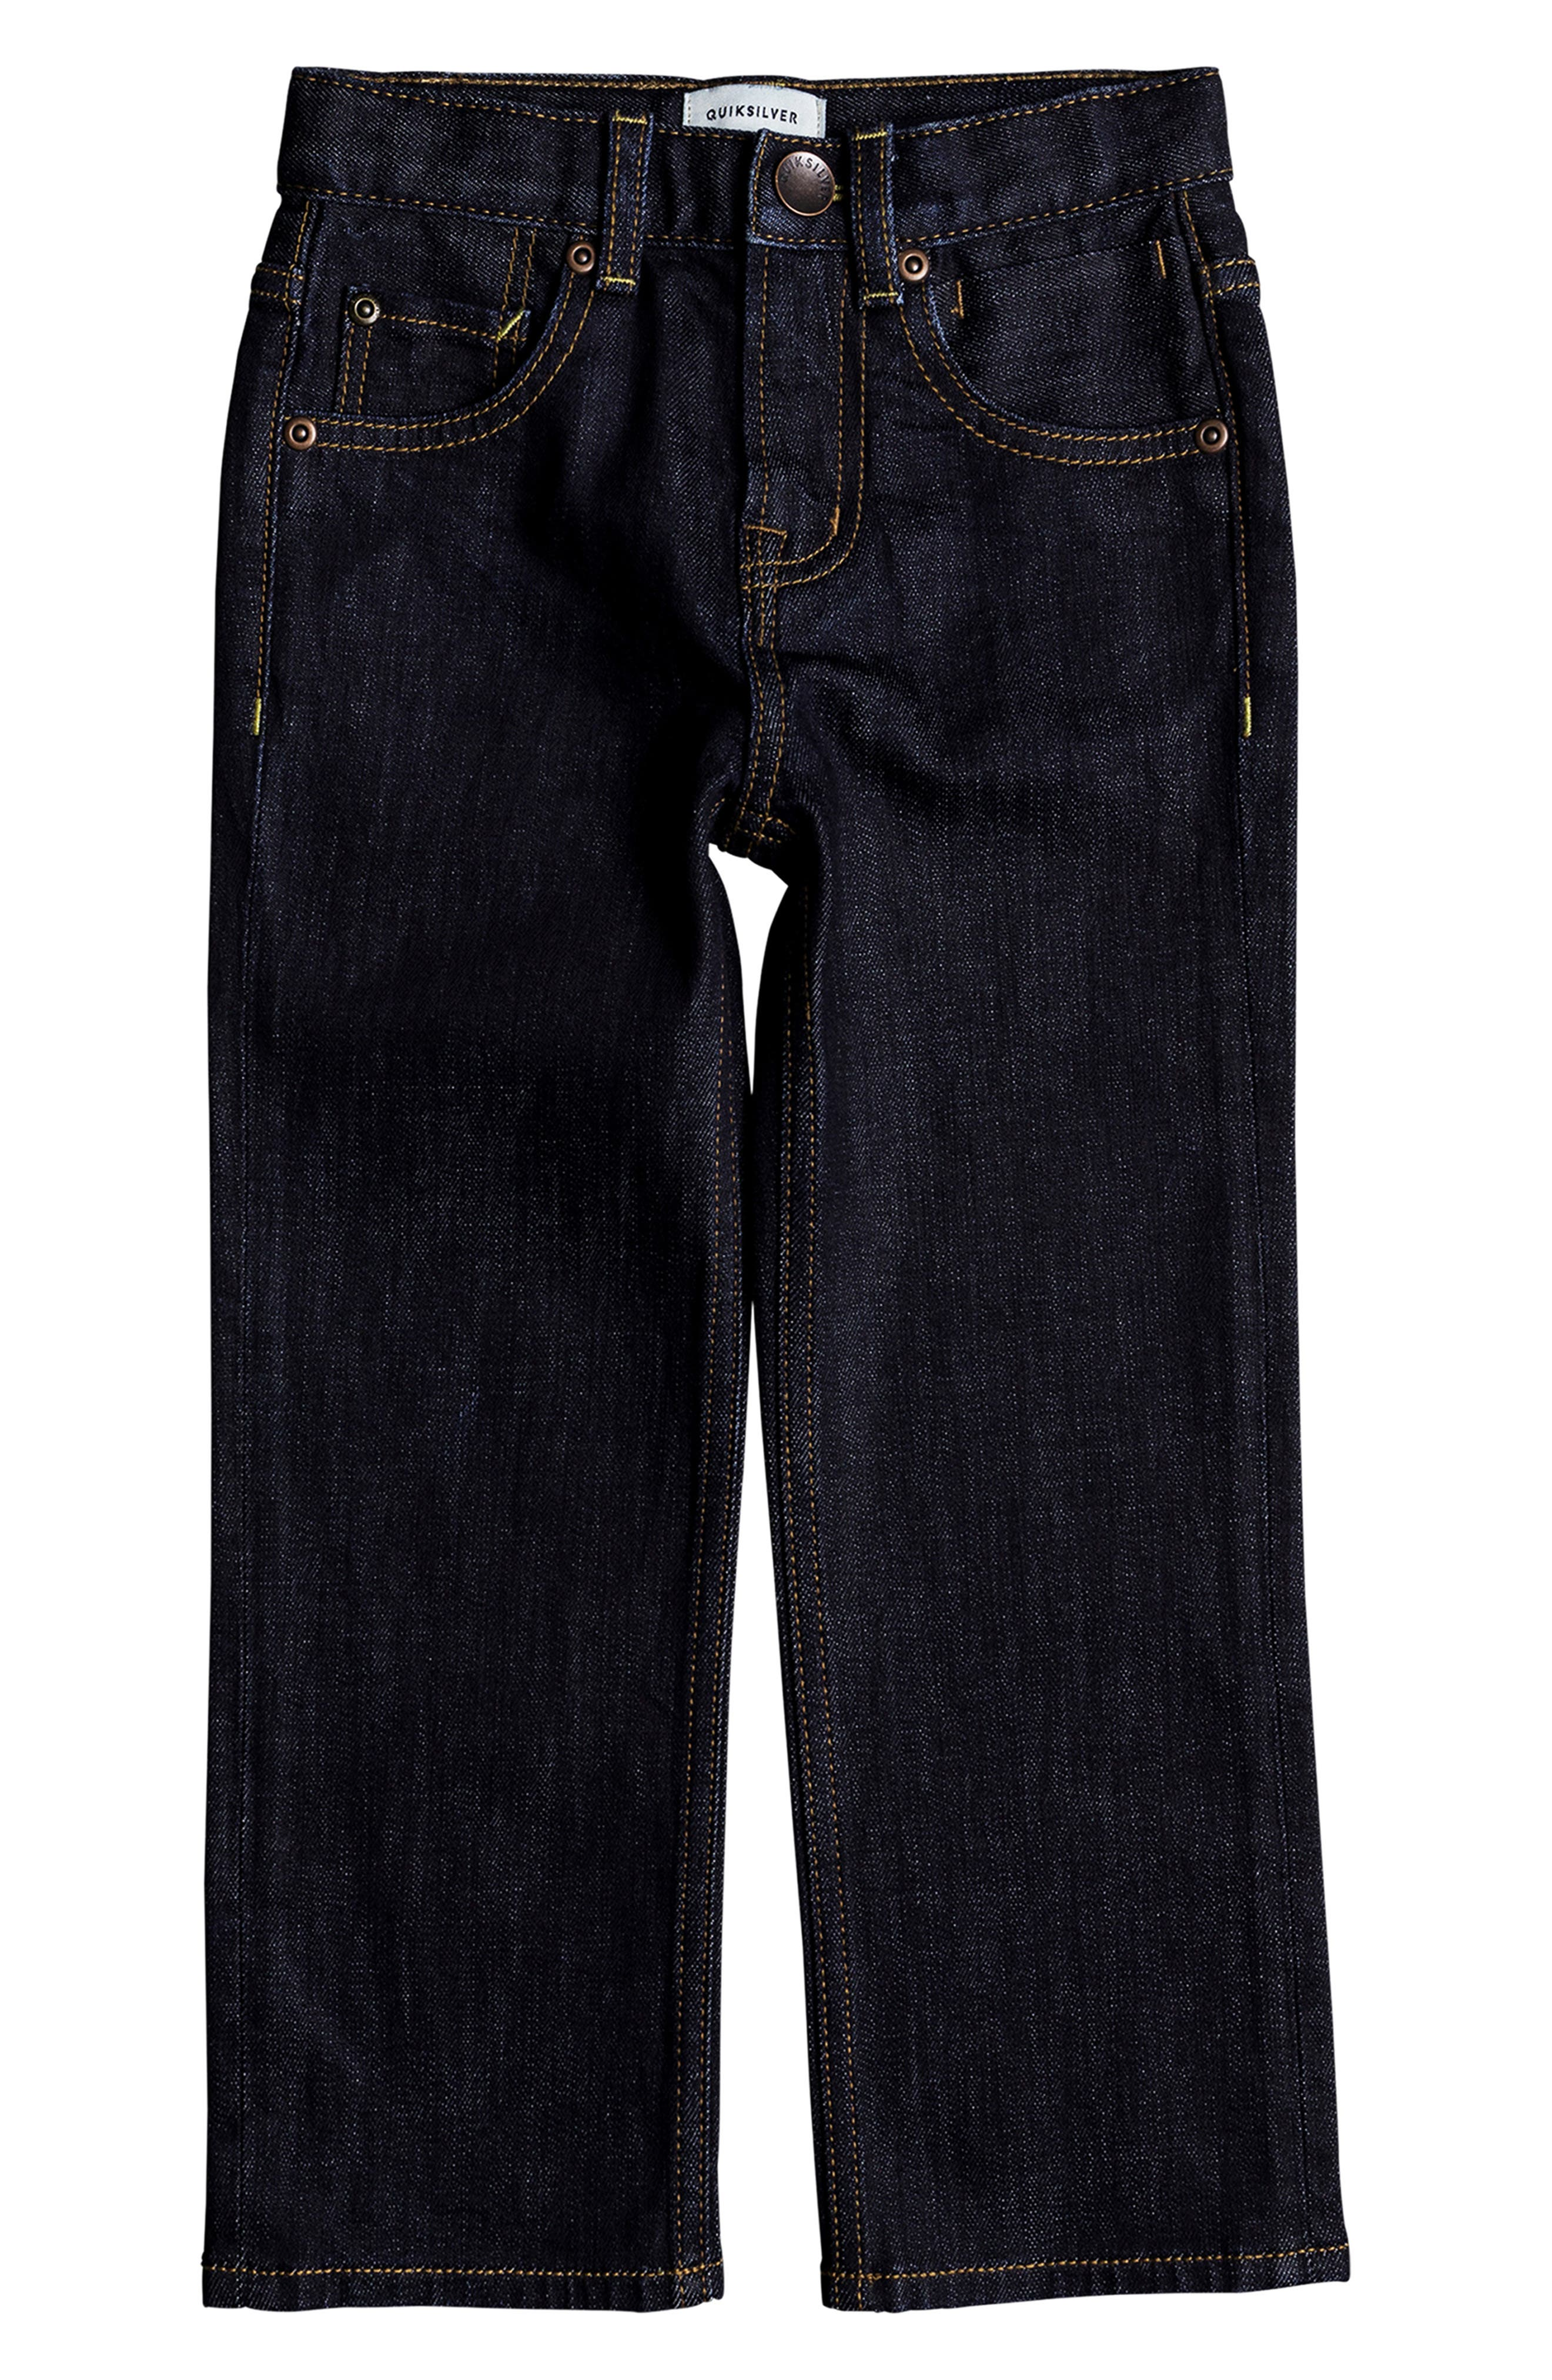 Sequel Rinse Jeans,                         Main,                         color, RINSE